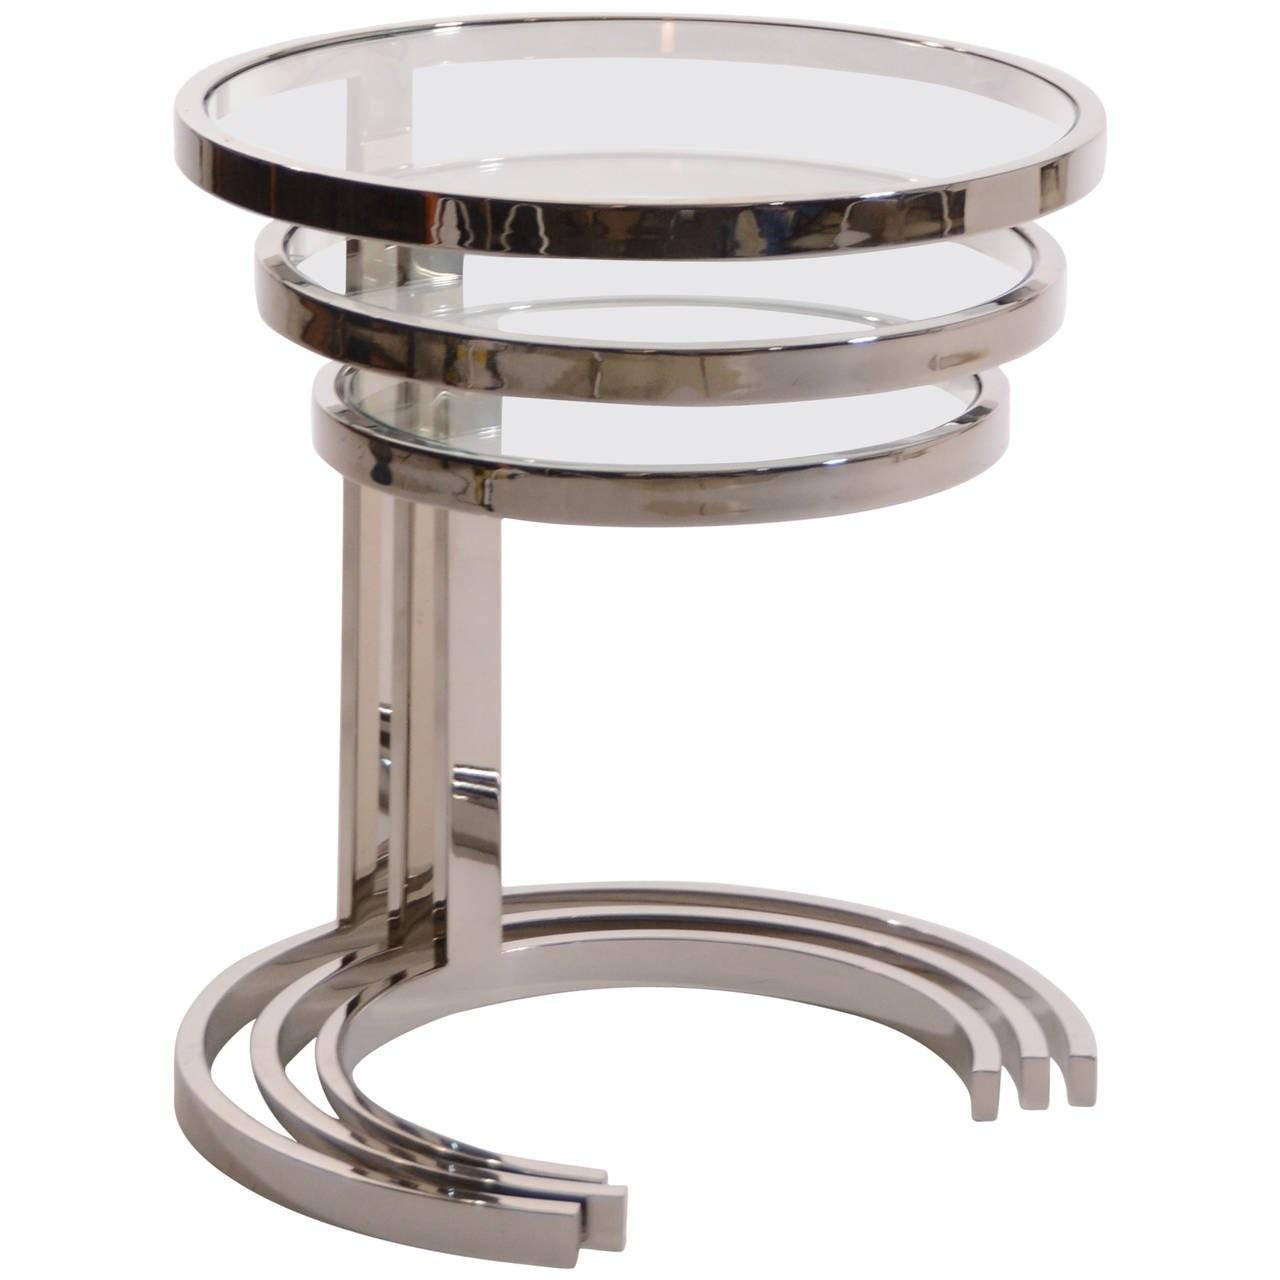 Set Nesting Stainless Steel Glass Tables